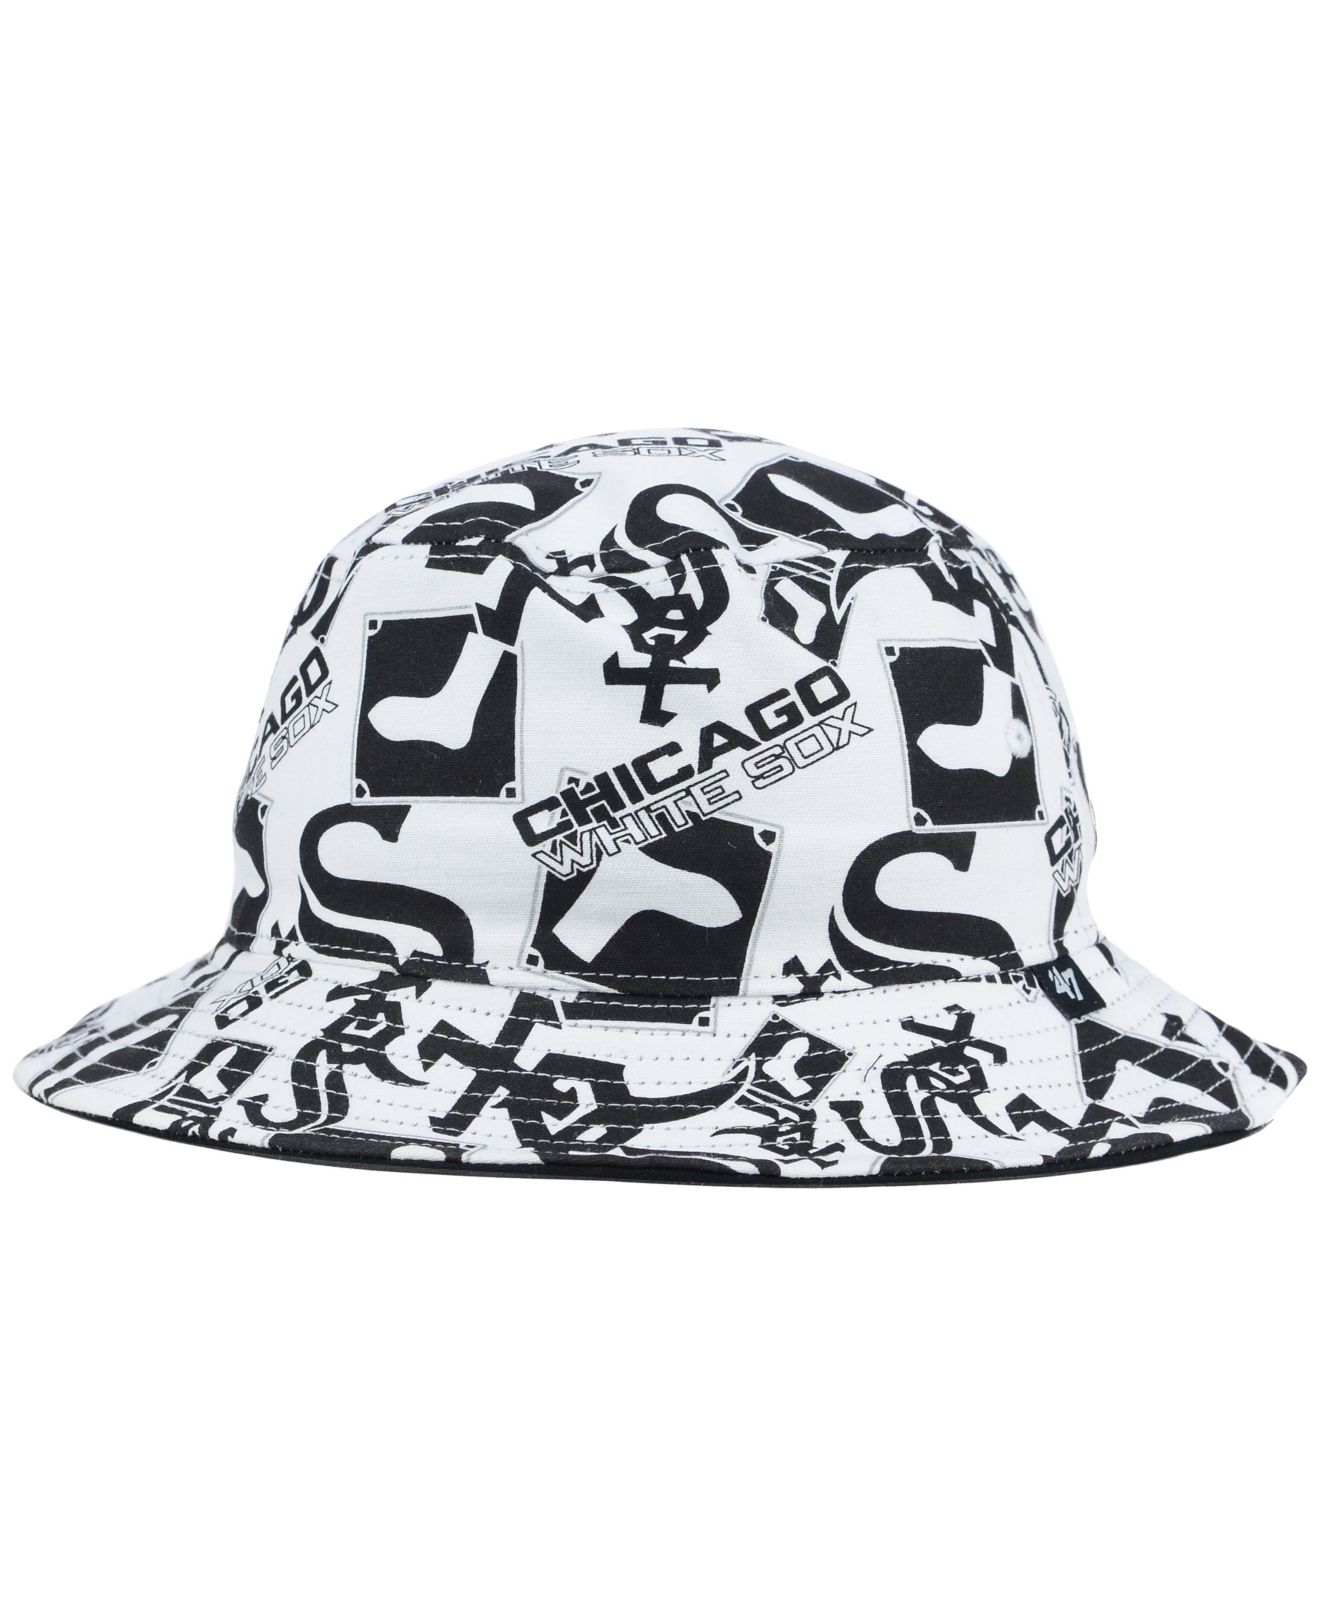 fea1107347cd1 ... wholesale deatstock starter white sox snapback hat lyst 47 brand  chicago white sox bravado bucket hat